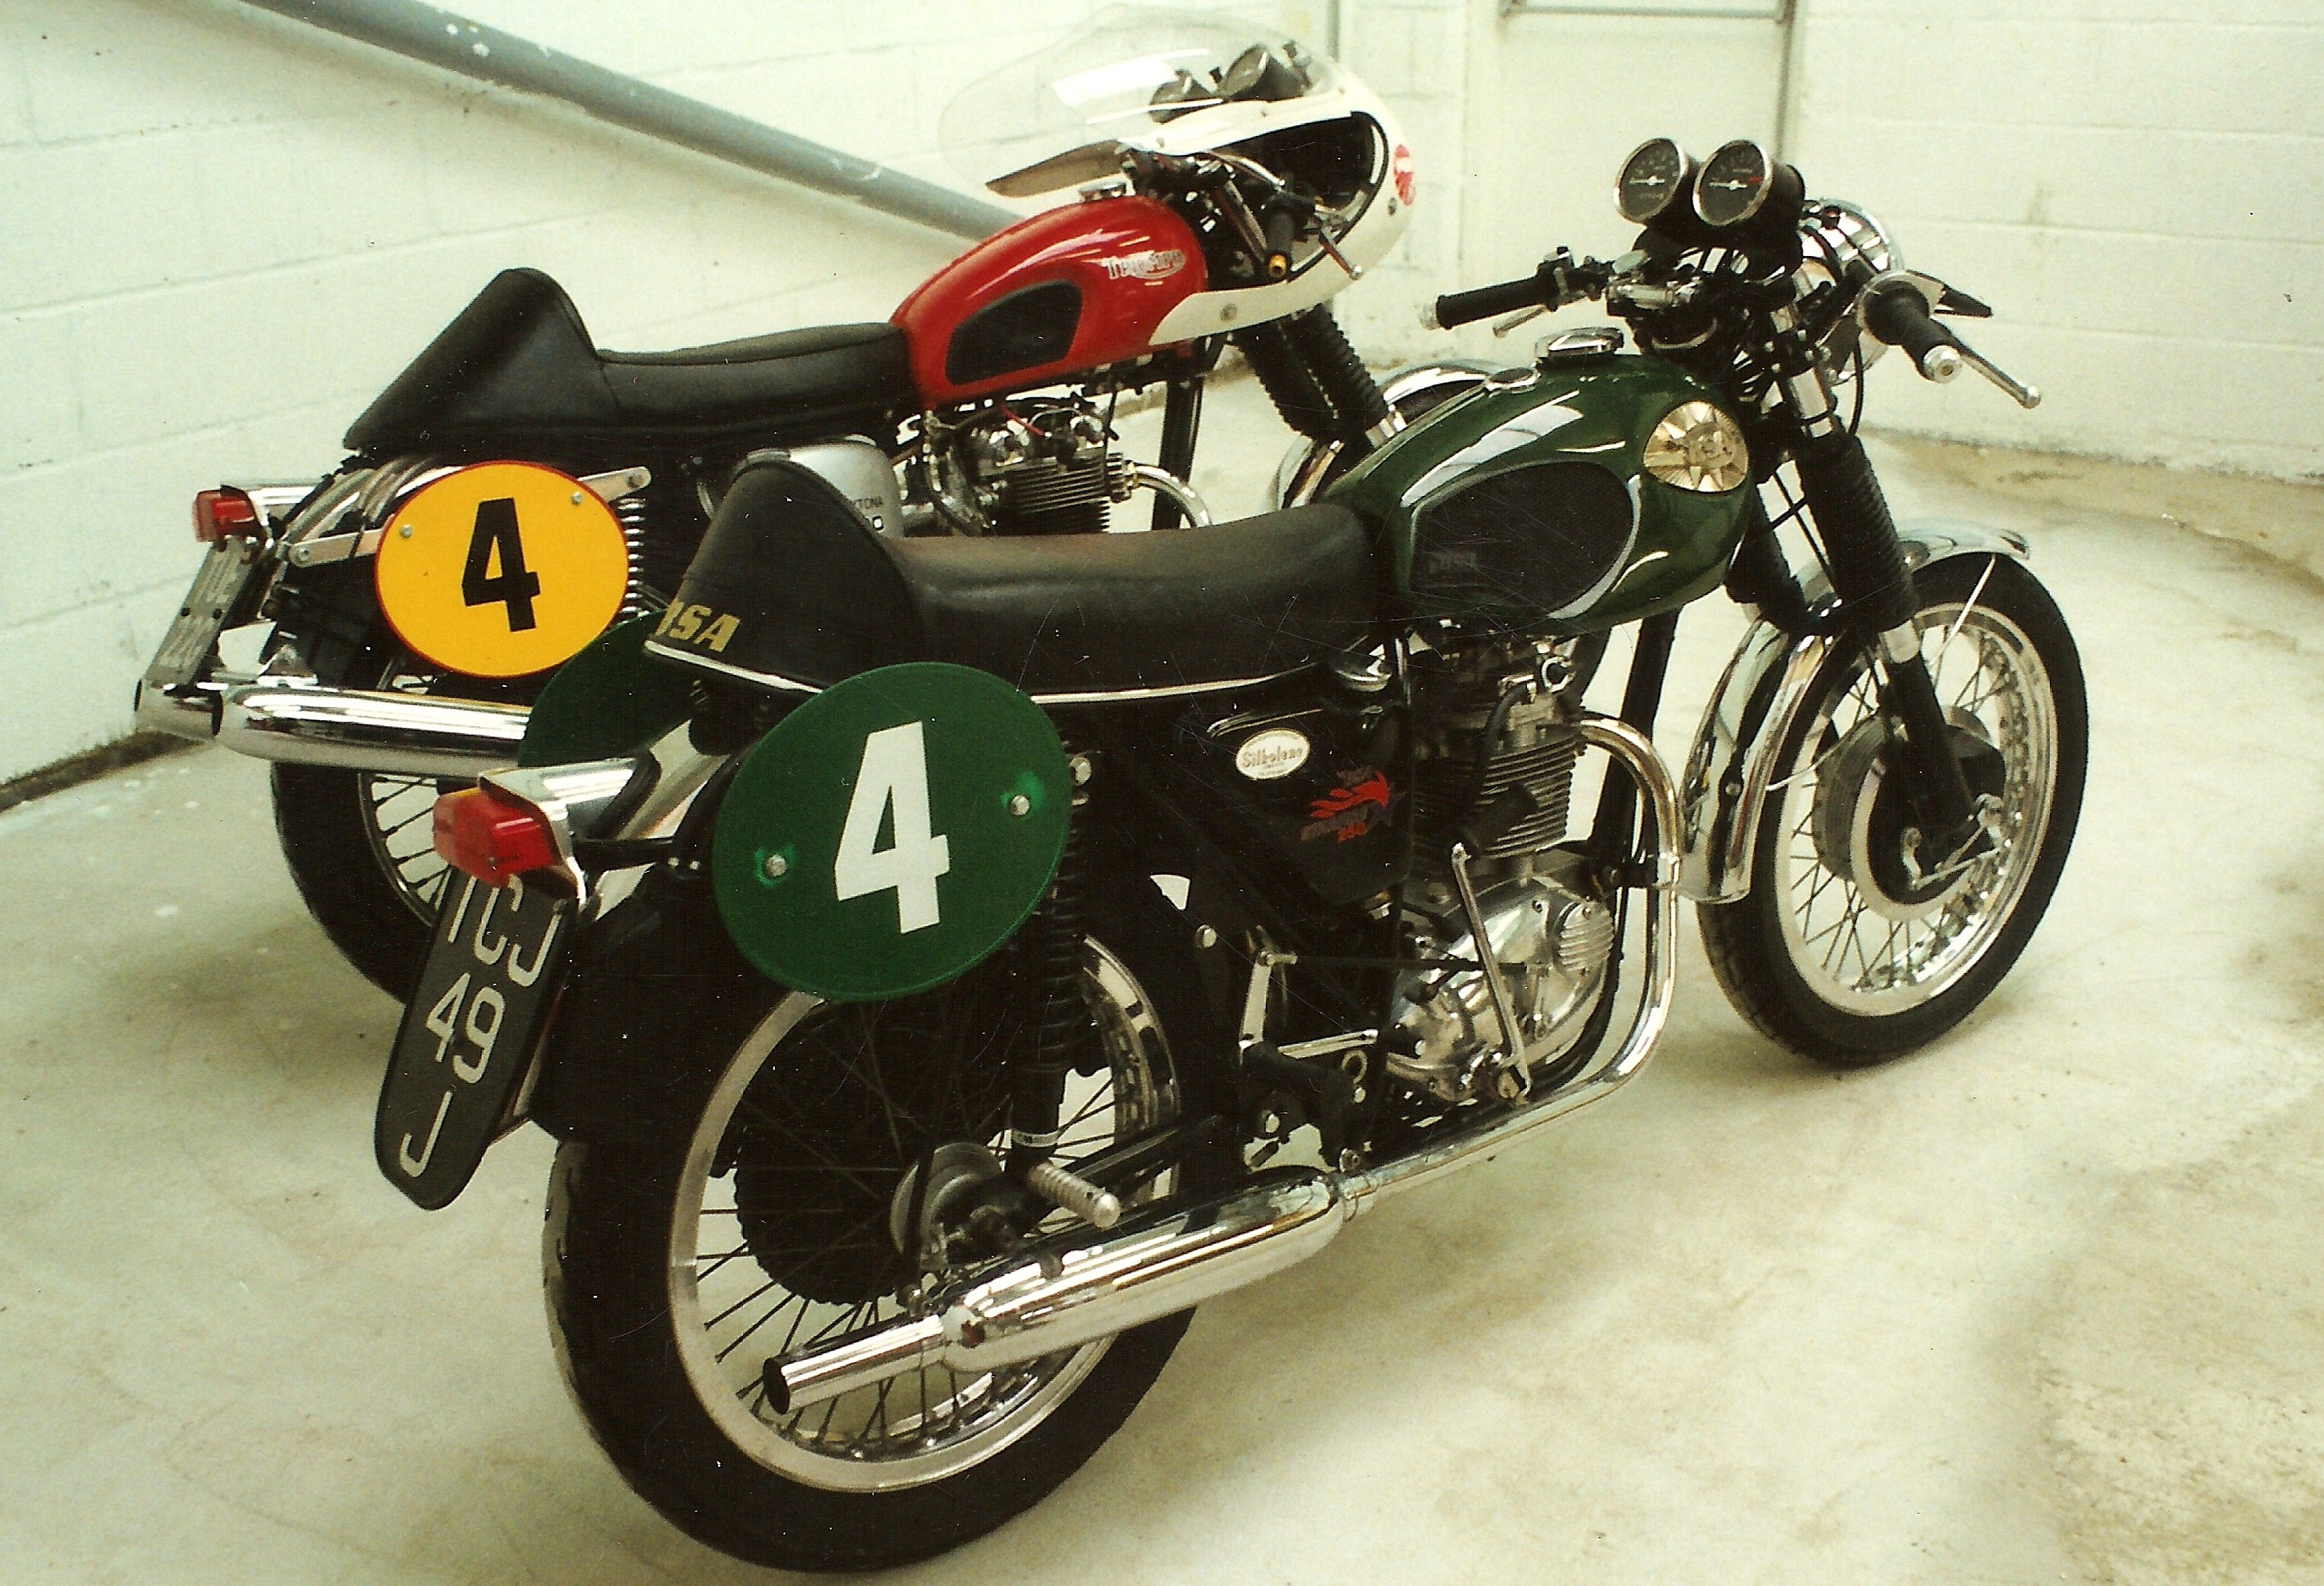 The RJM Team Sara production class racing stable of the 1990's, a chilli hot Daytona and a positivley jalapeno Starfire